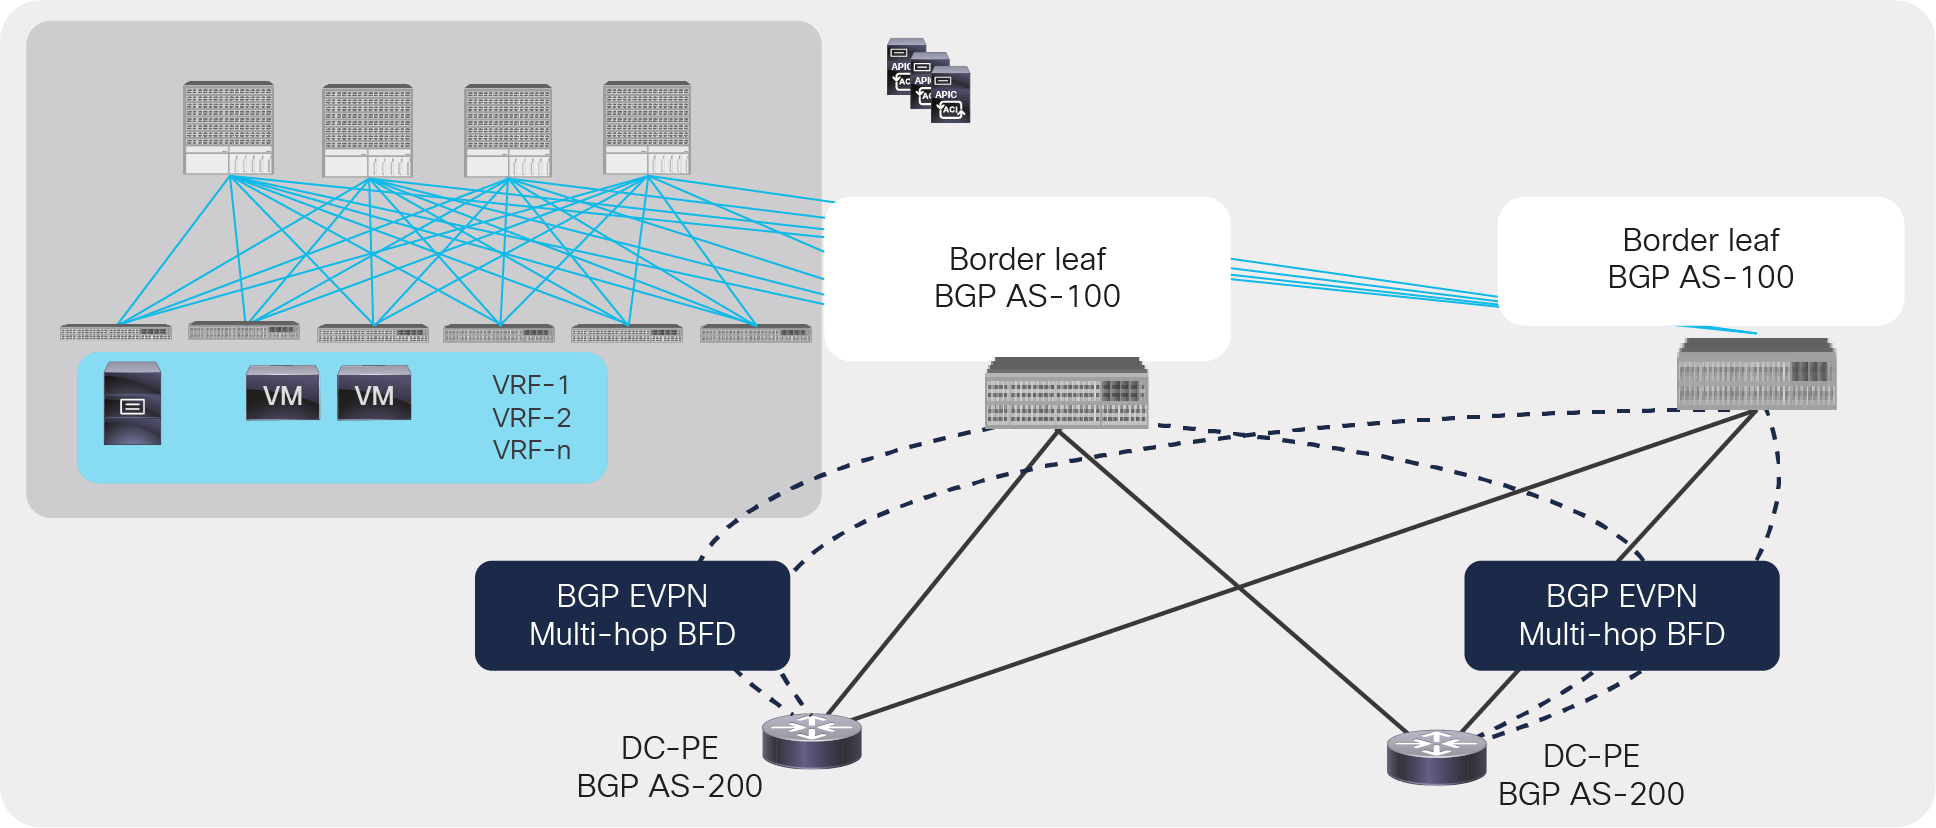 BGP EVPN session between ACI border leaf and DC-PE with multi-hop BFD